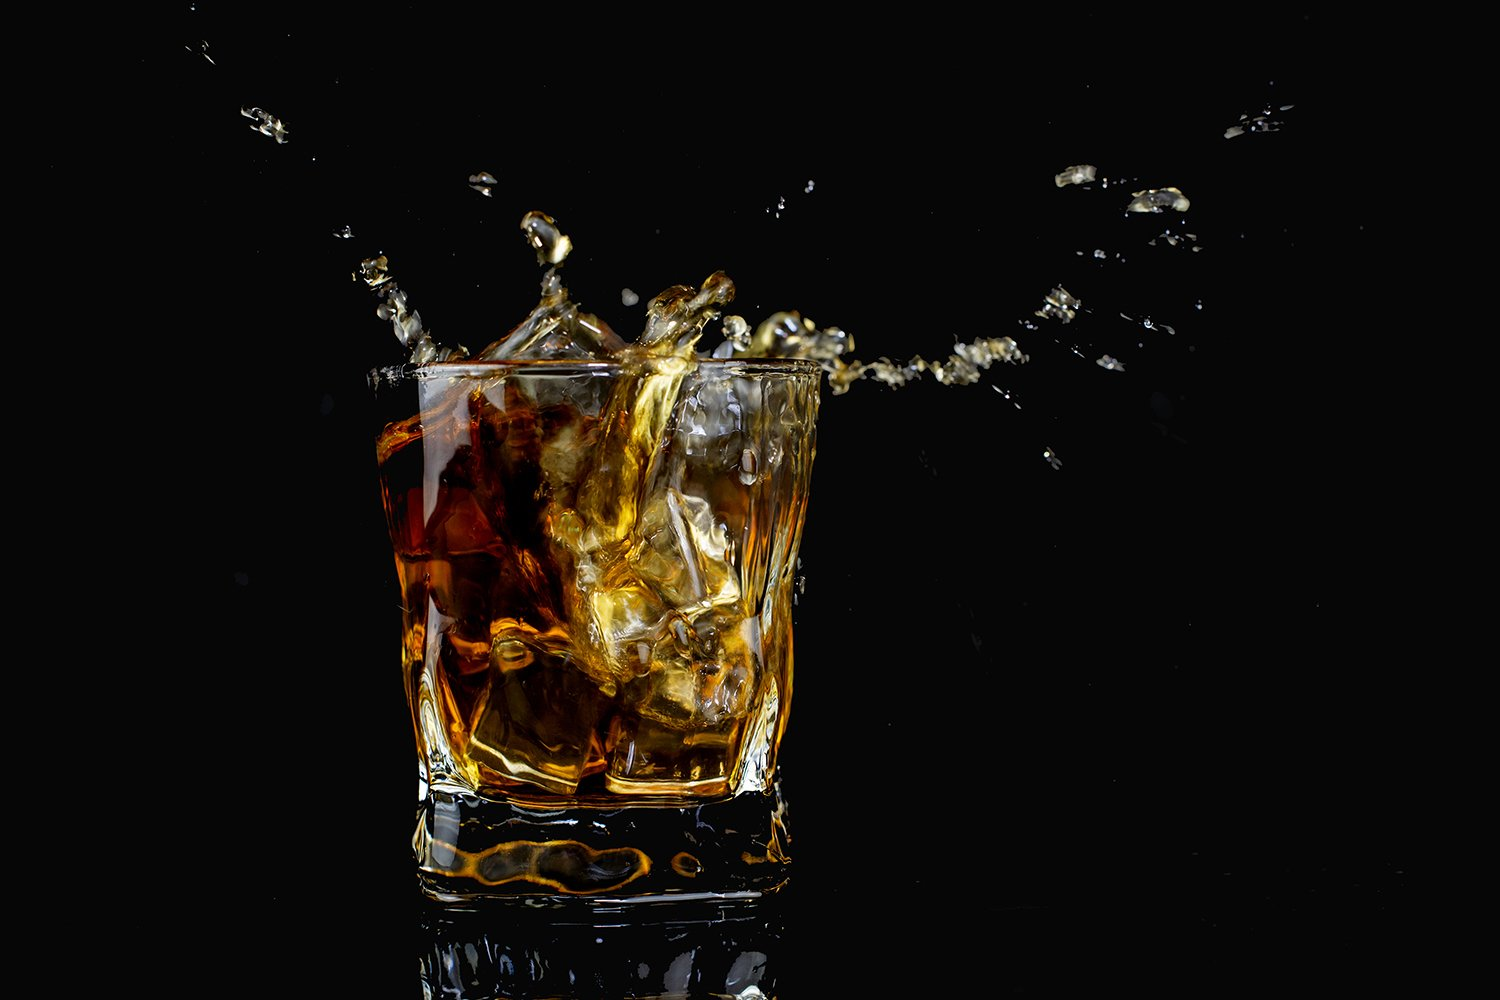 splash alcohol drink whiskey with ice with drops in a glass example image 1